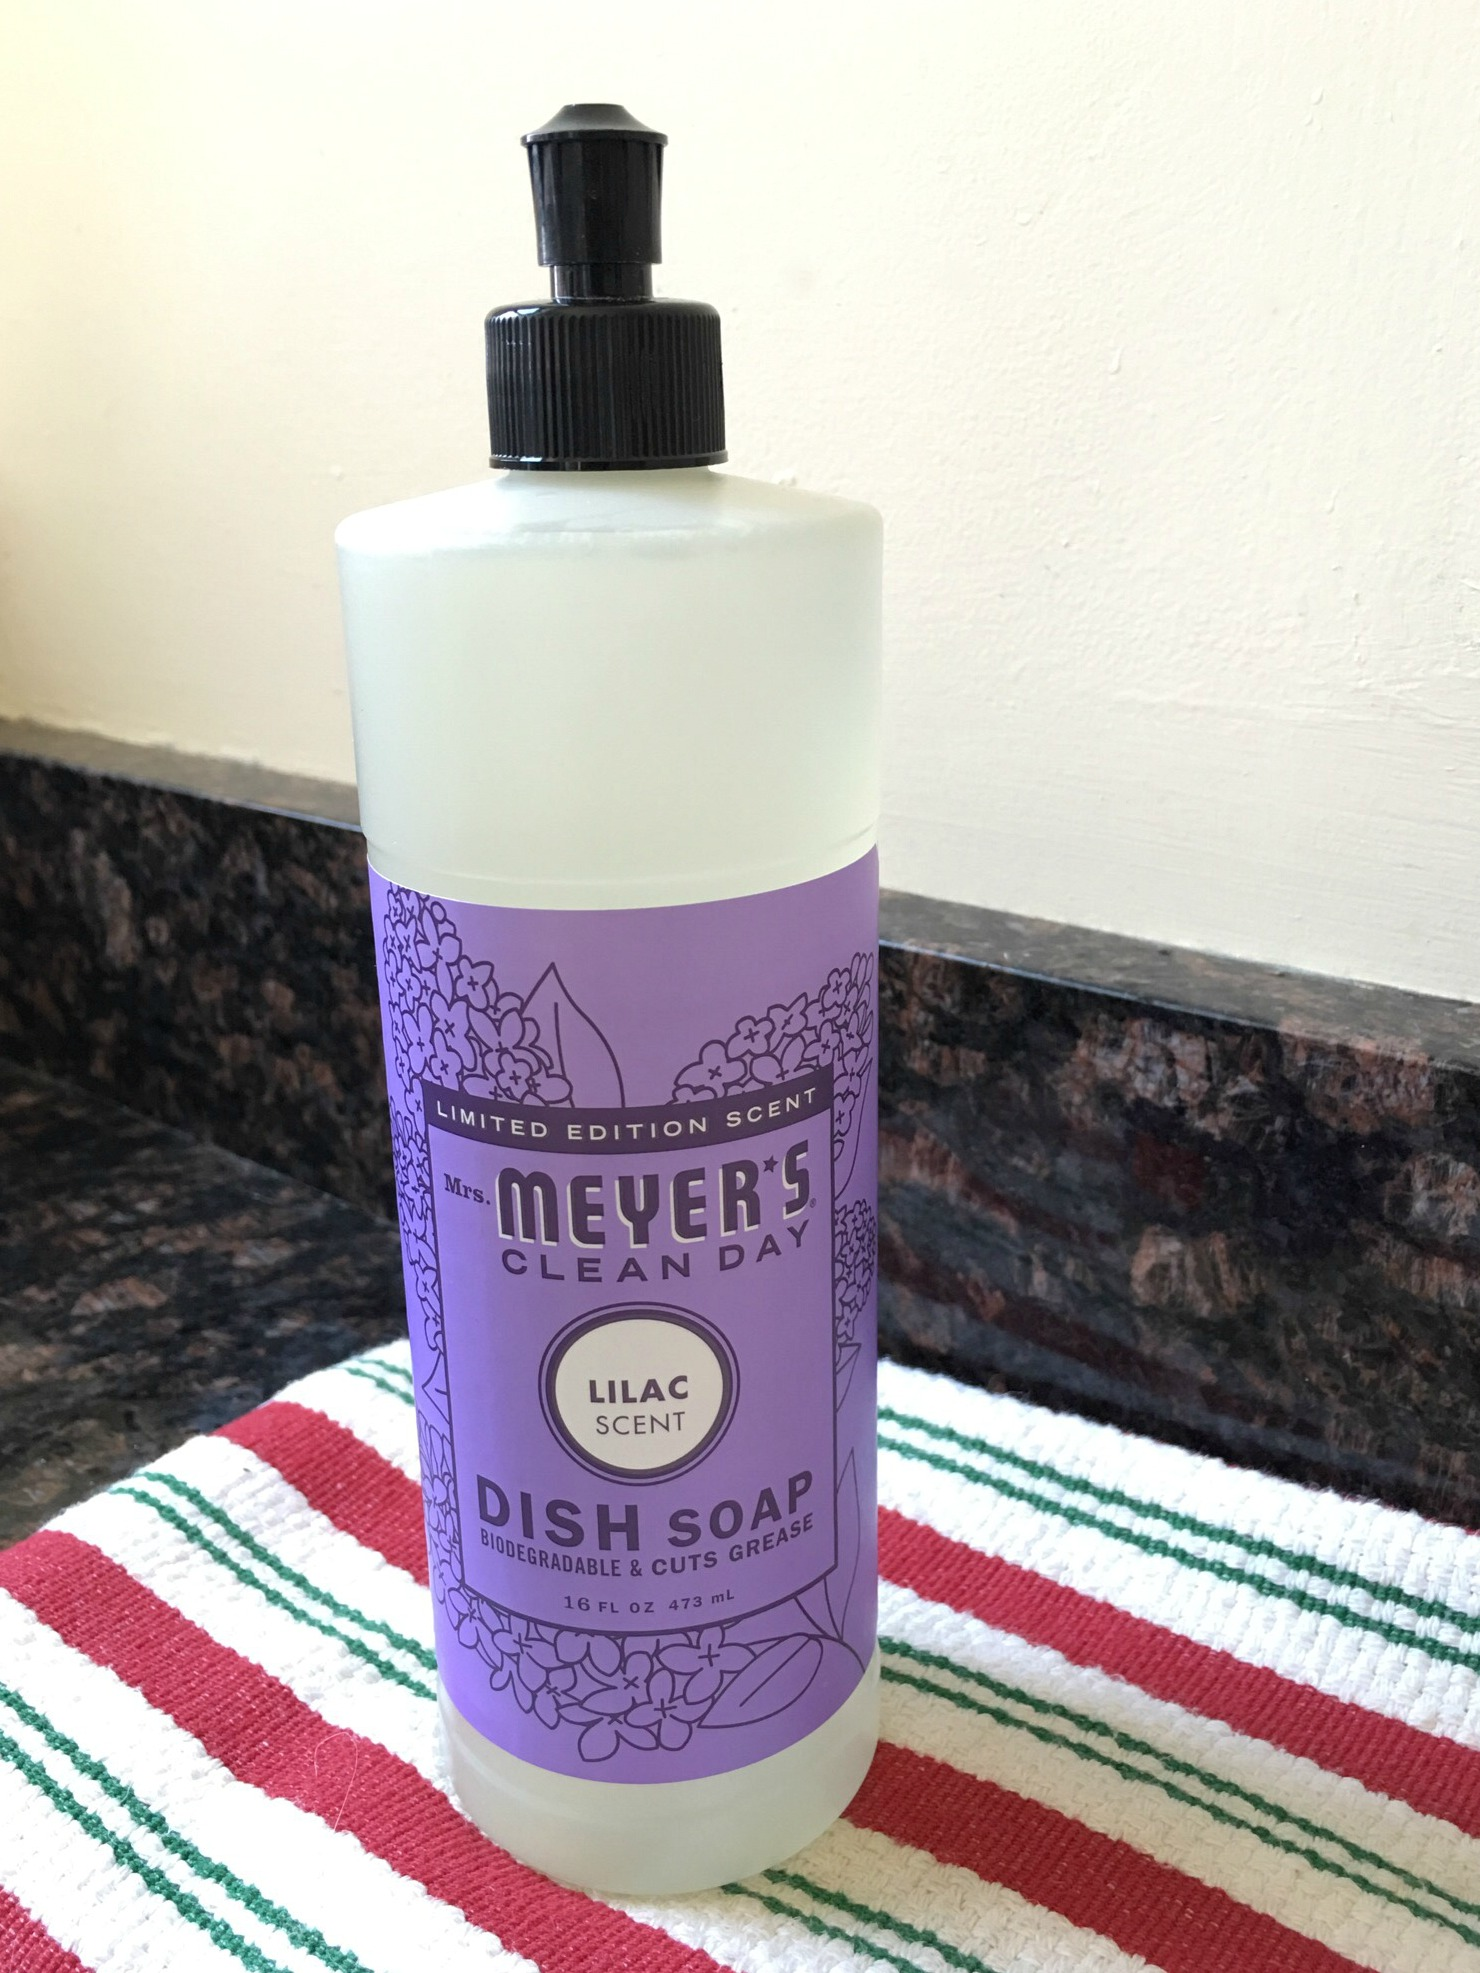 Meyer's clean day dish soap